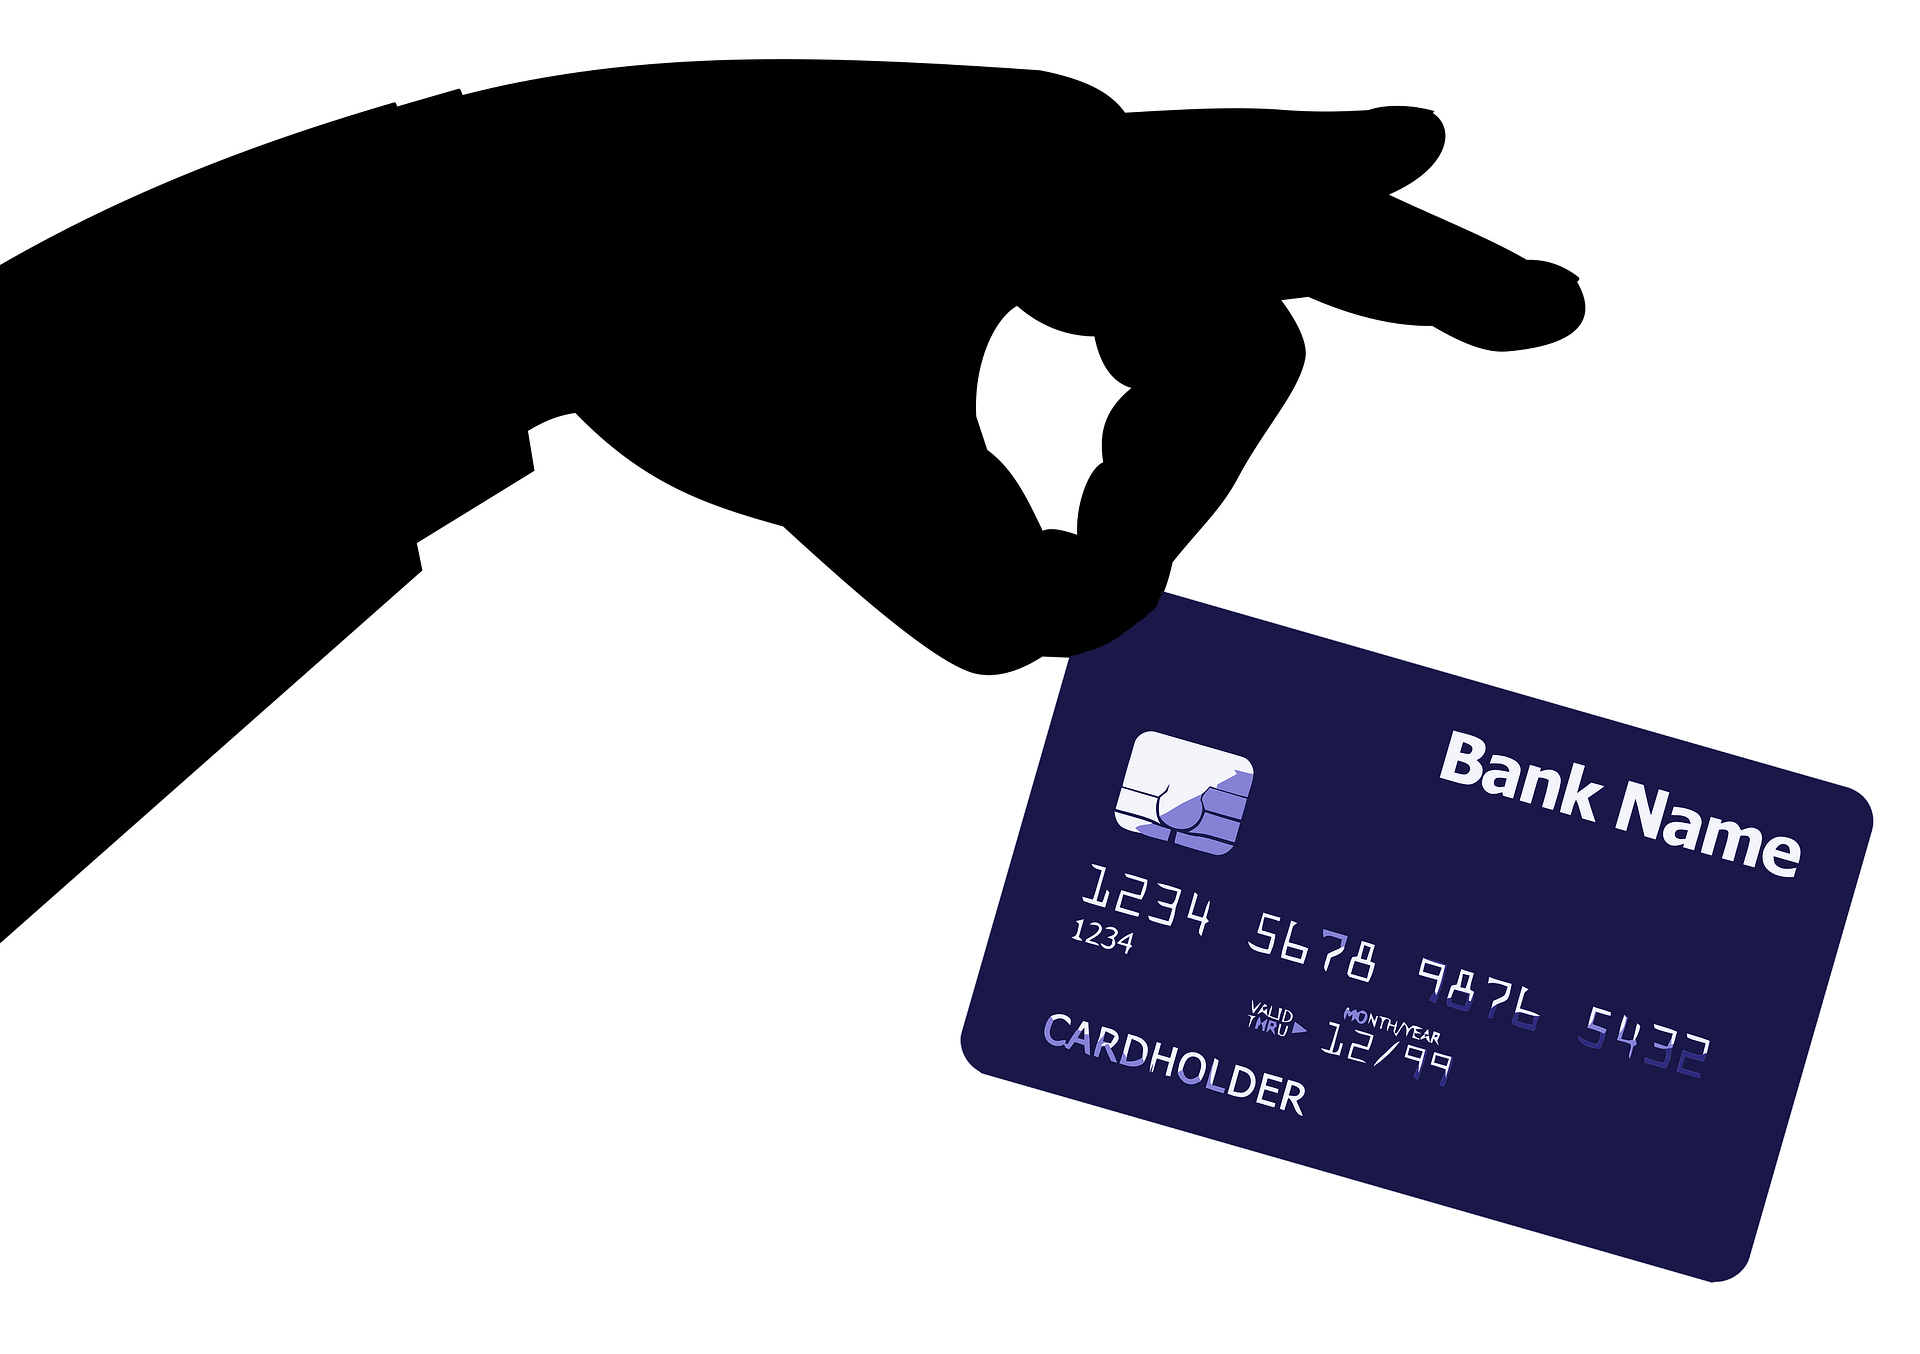 Animated hand holding a credit card. Ecommerce and credit card fraud prevention